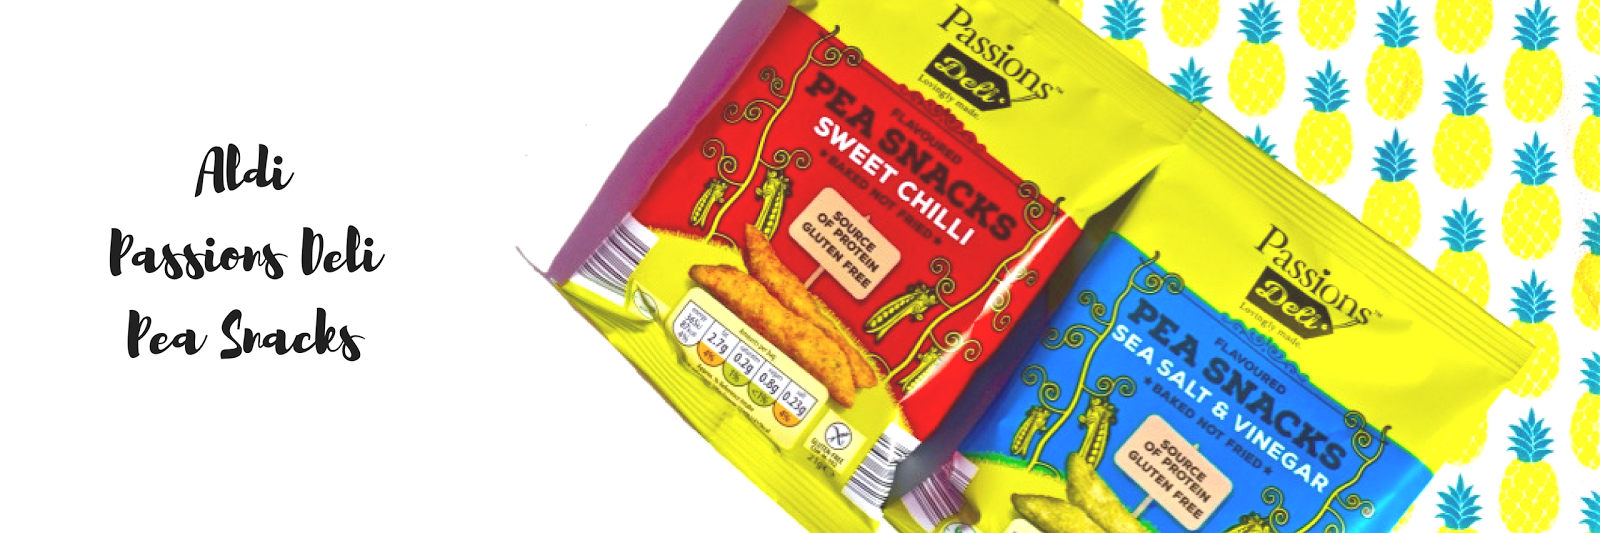 Aldi Passions Deli Pea Snacks http://psychologyfoodandfitness.blogspot.co.uk/